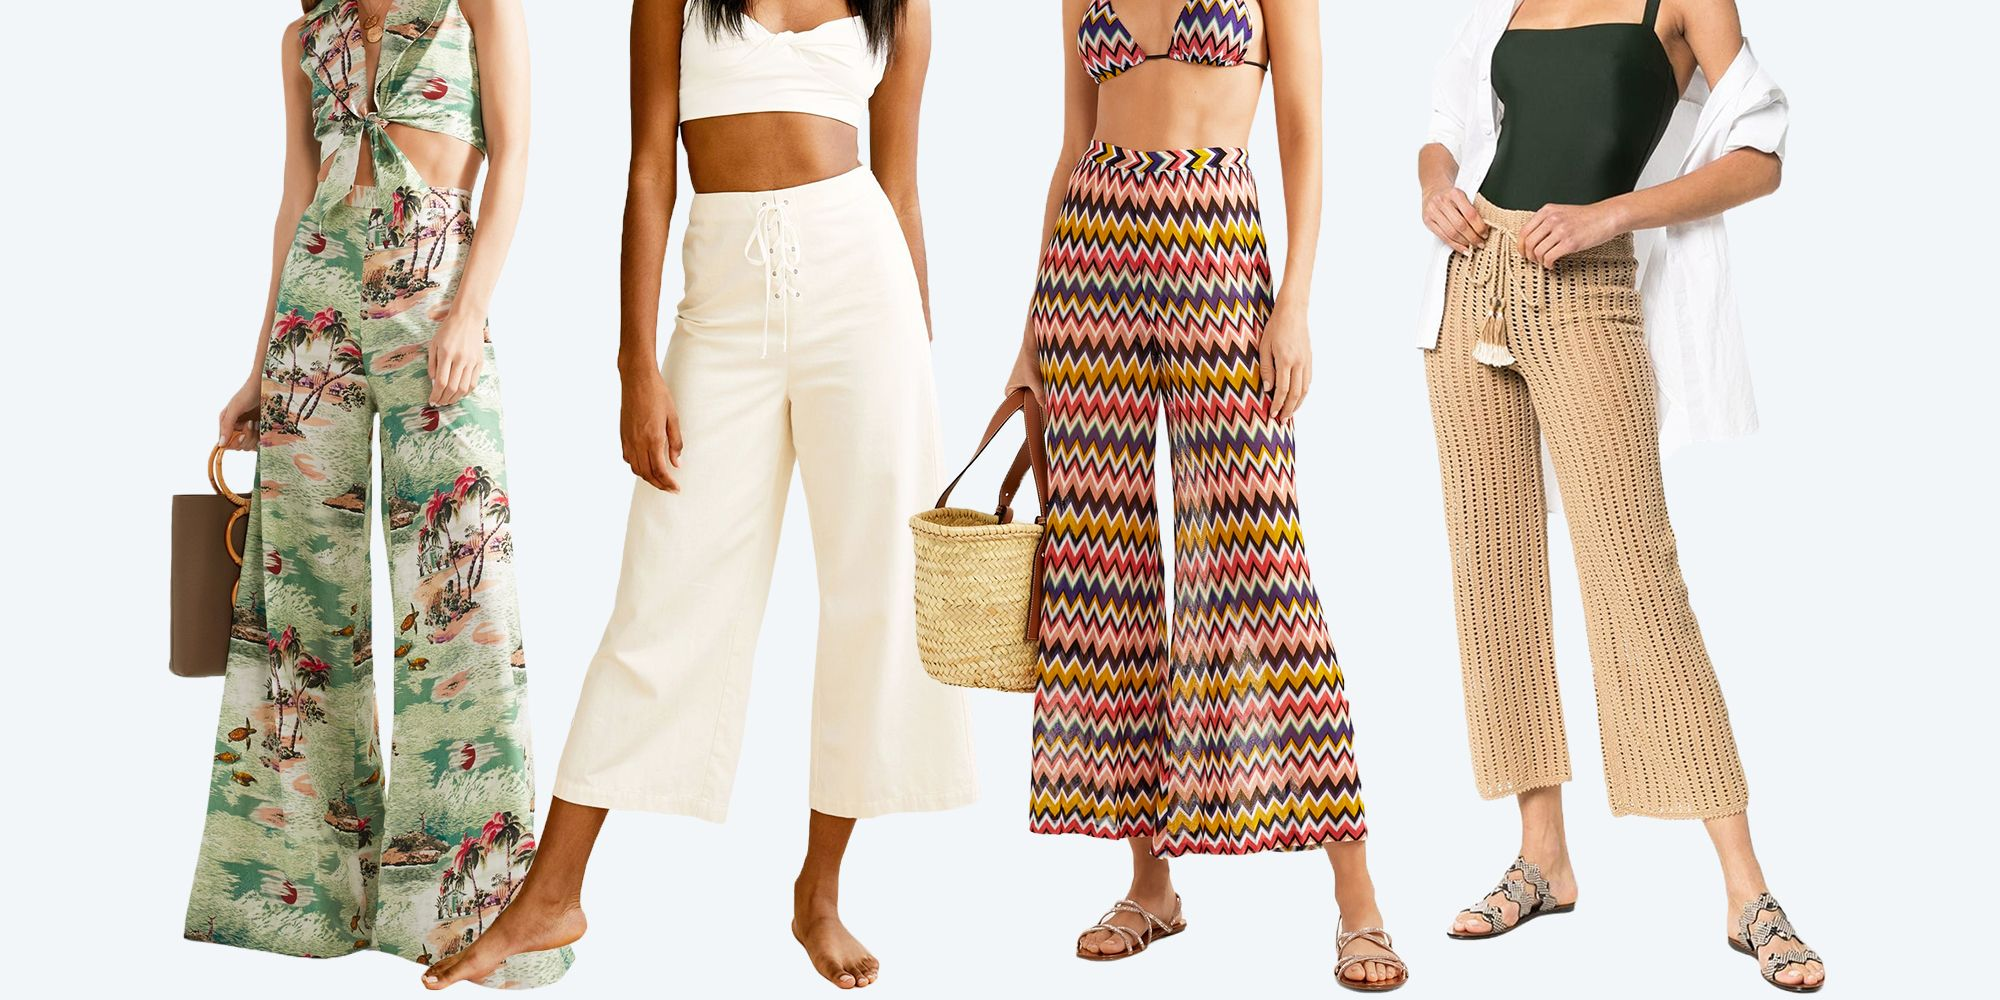 12 Pairs of Beach Pants That Will Get You Excited for Summer